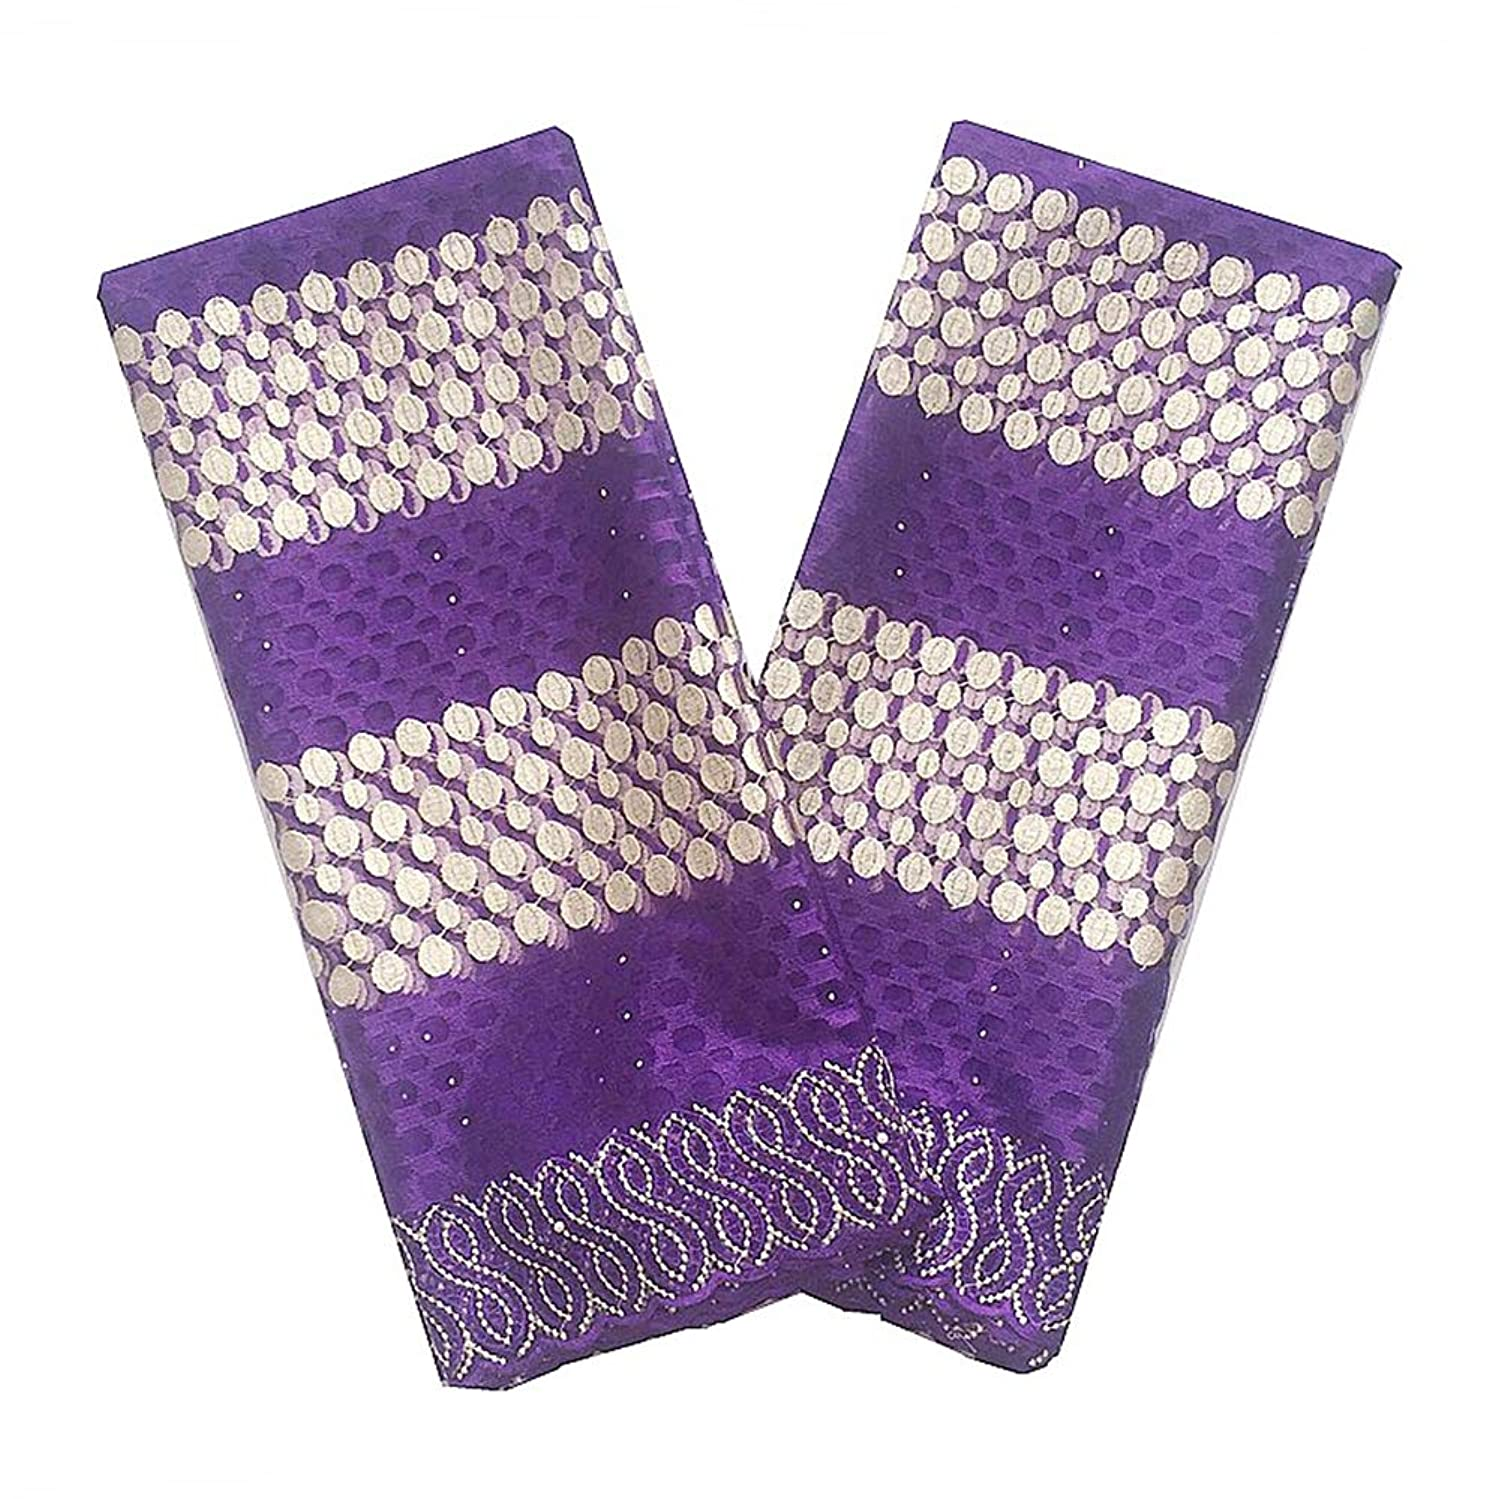 WorthSJLH African Lace Fabric 2018 Lace for African Parties White Gold Lilac Lace Fabric New Tulle French Lace Fabrics LF867 (Purple)